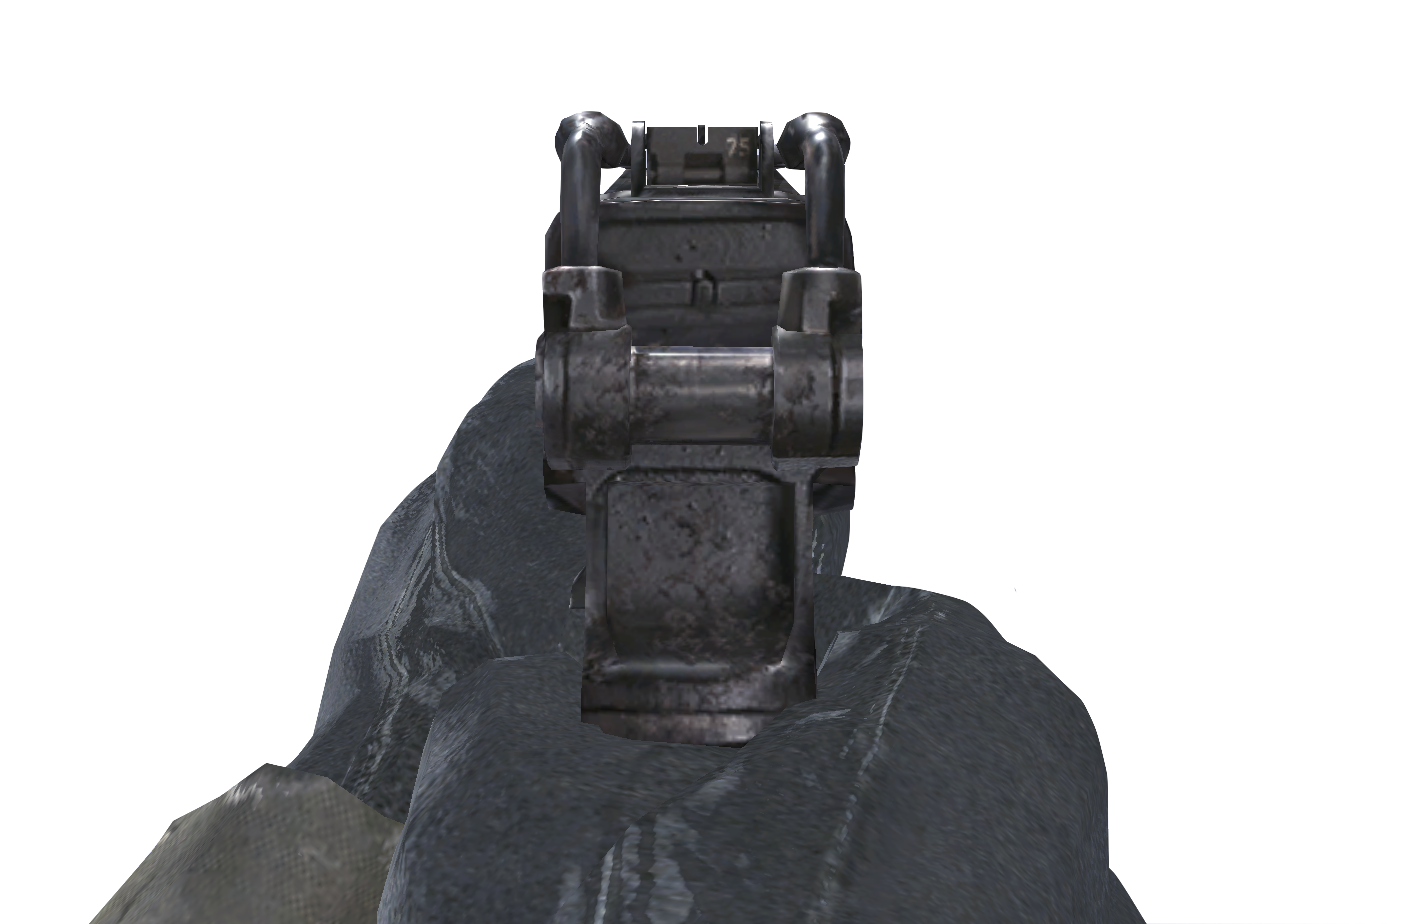 File:Skorpion Iron Sights CoD4.png